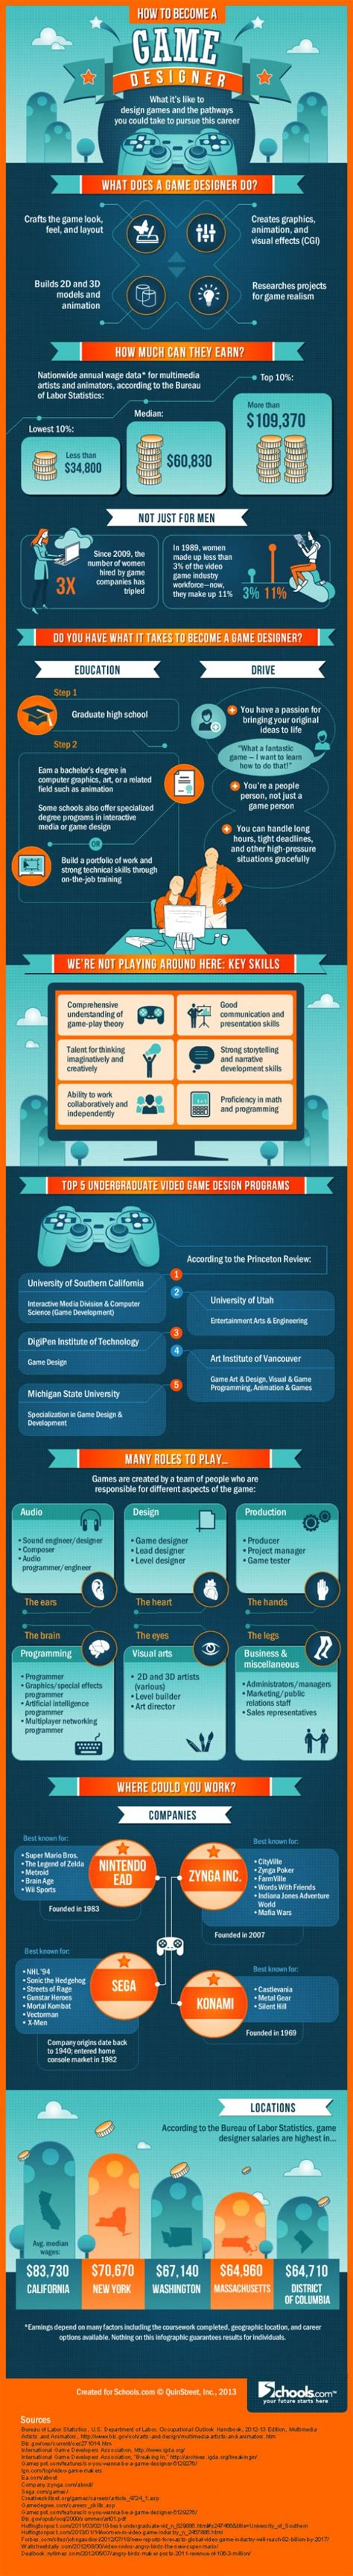 game design job outlook infographic how to become a game designer